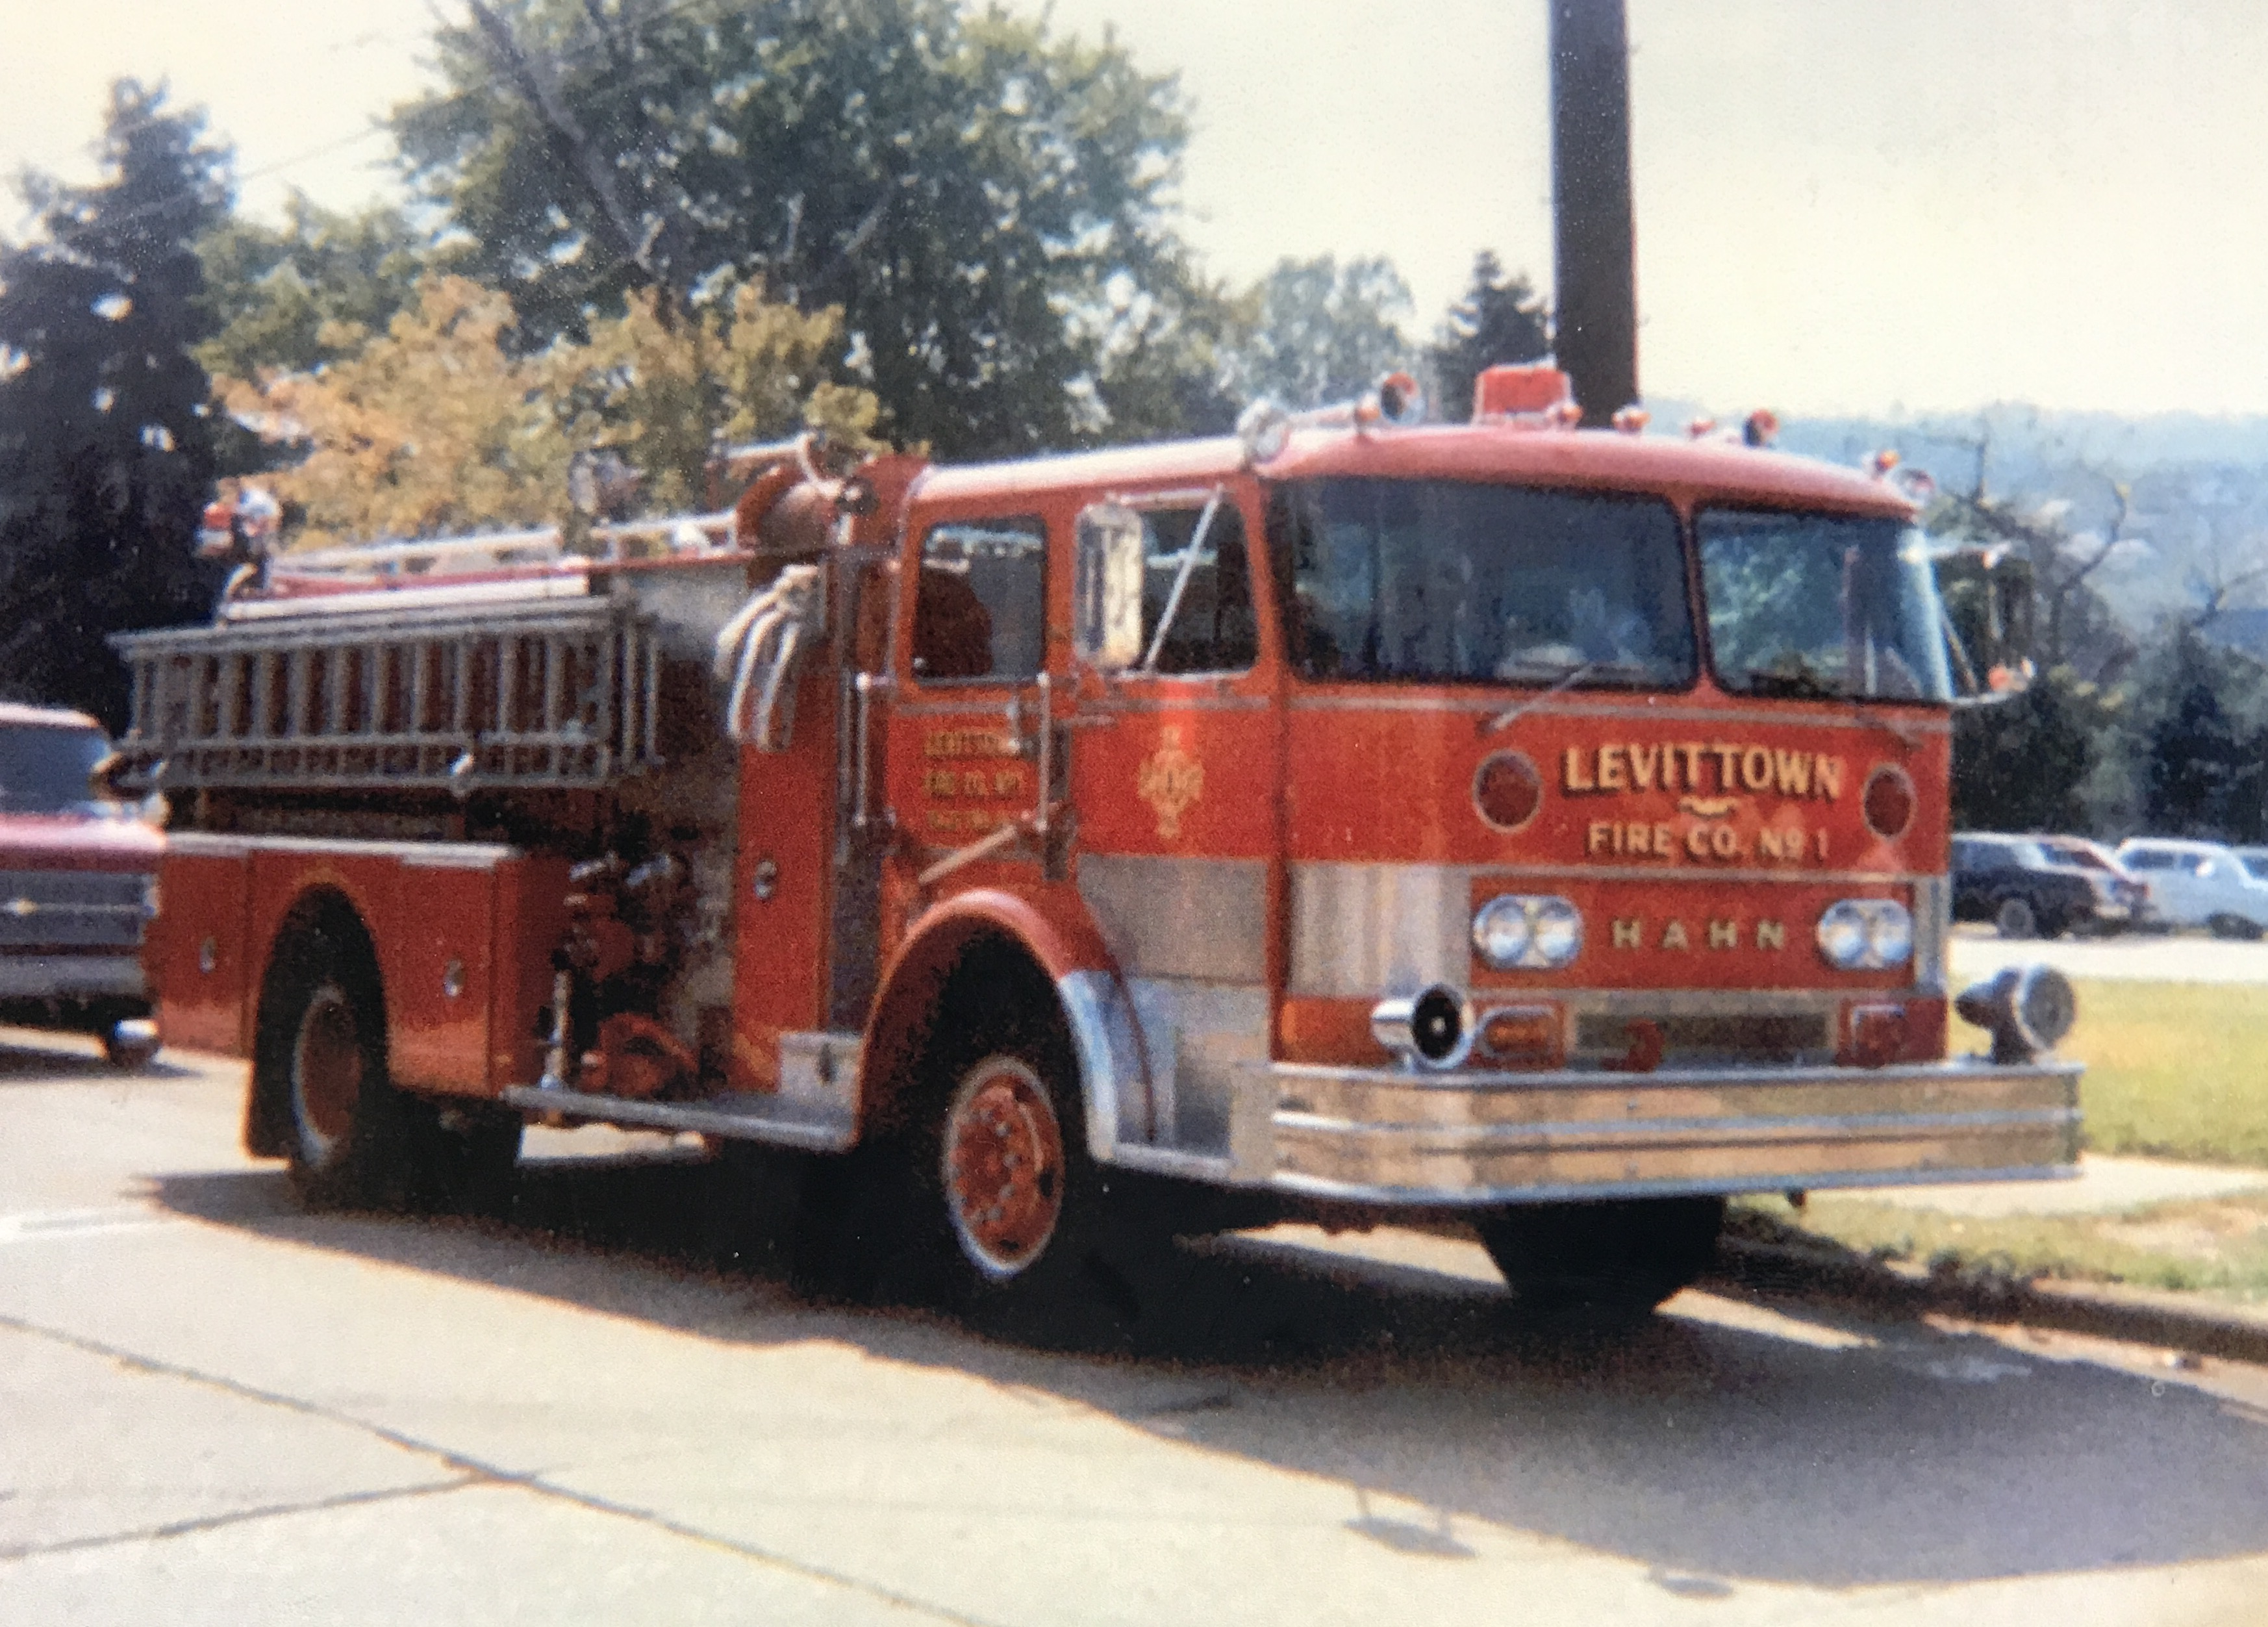 Retired Apparatus Levittown Fire Company 1